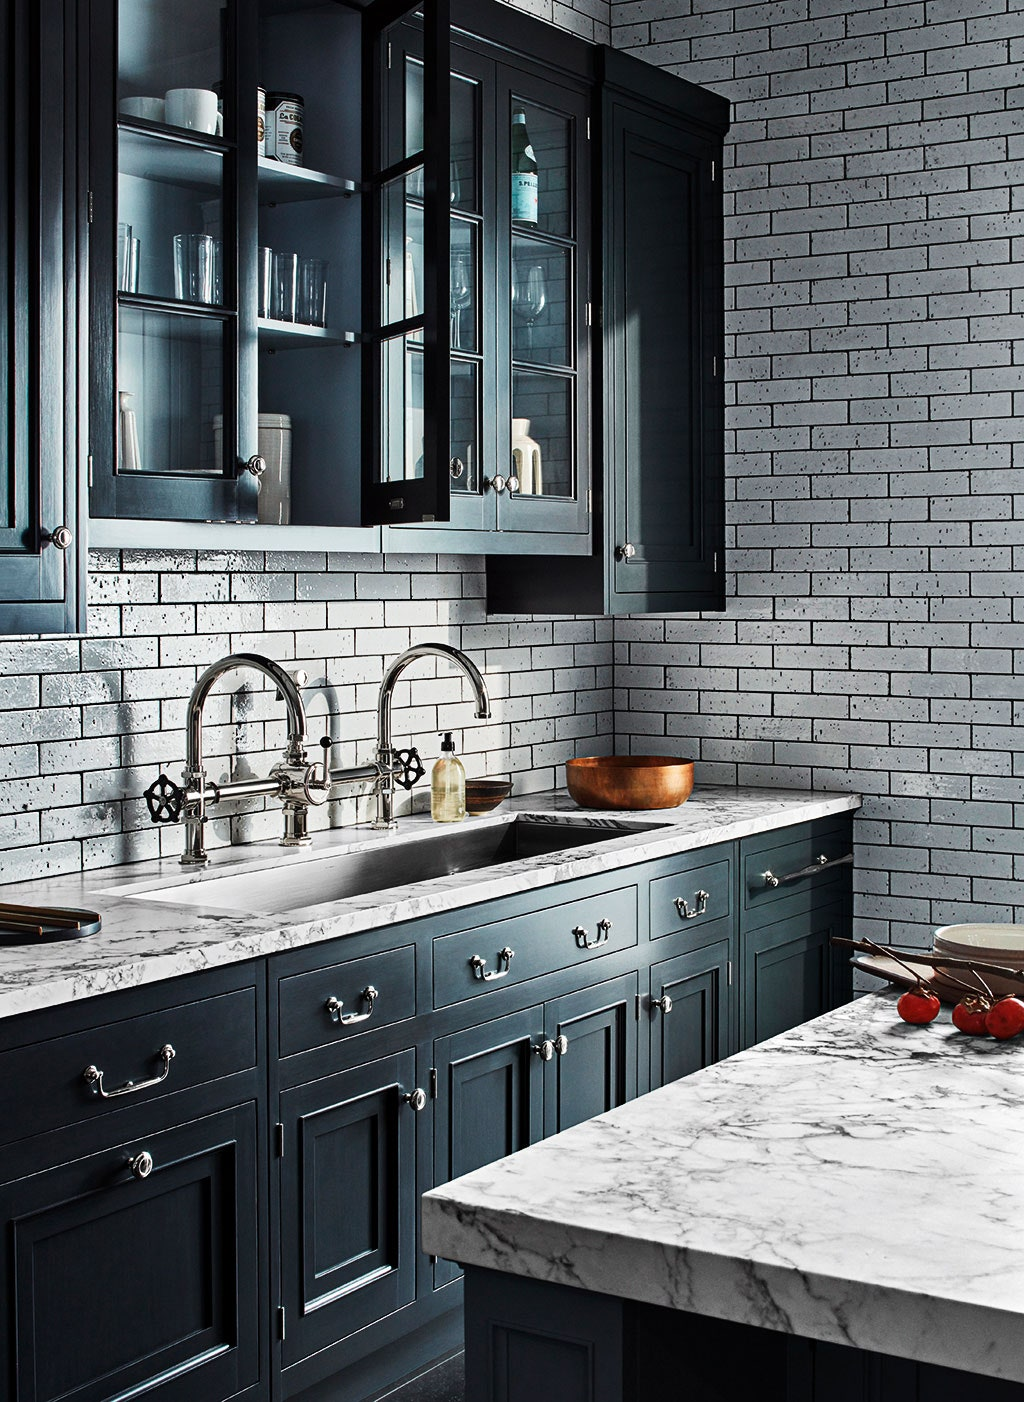 Discover AD's 2020 Great Design Awards: Kitchens great design awards Discover AD's 2020 Great Design Awards: Kitchens discover ads 2020 great design awards kitchens 4